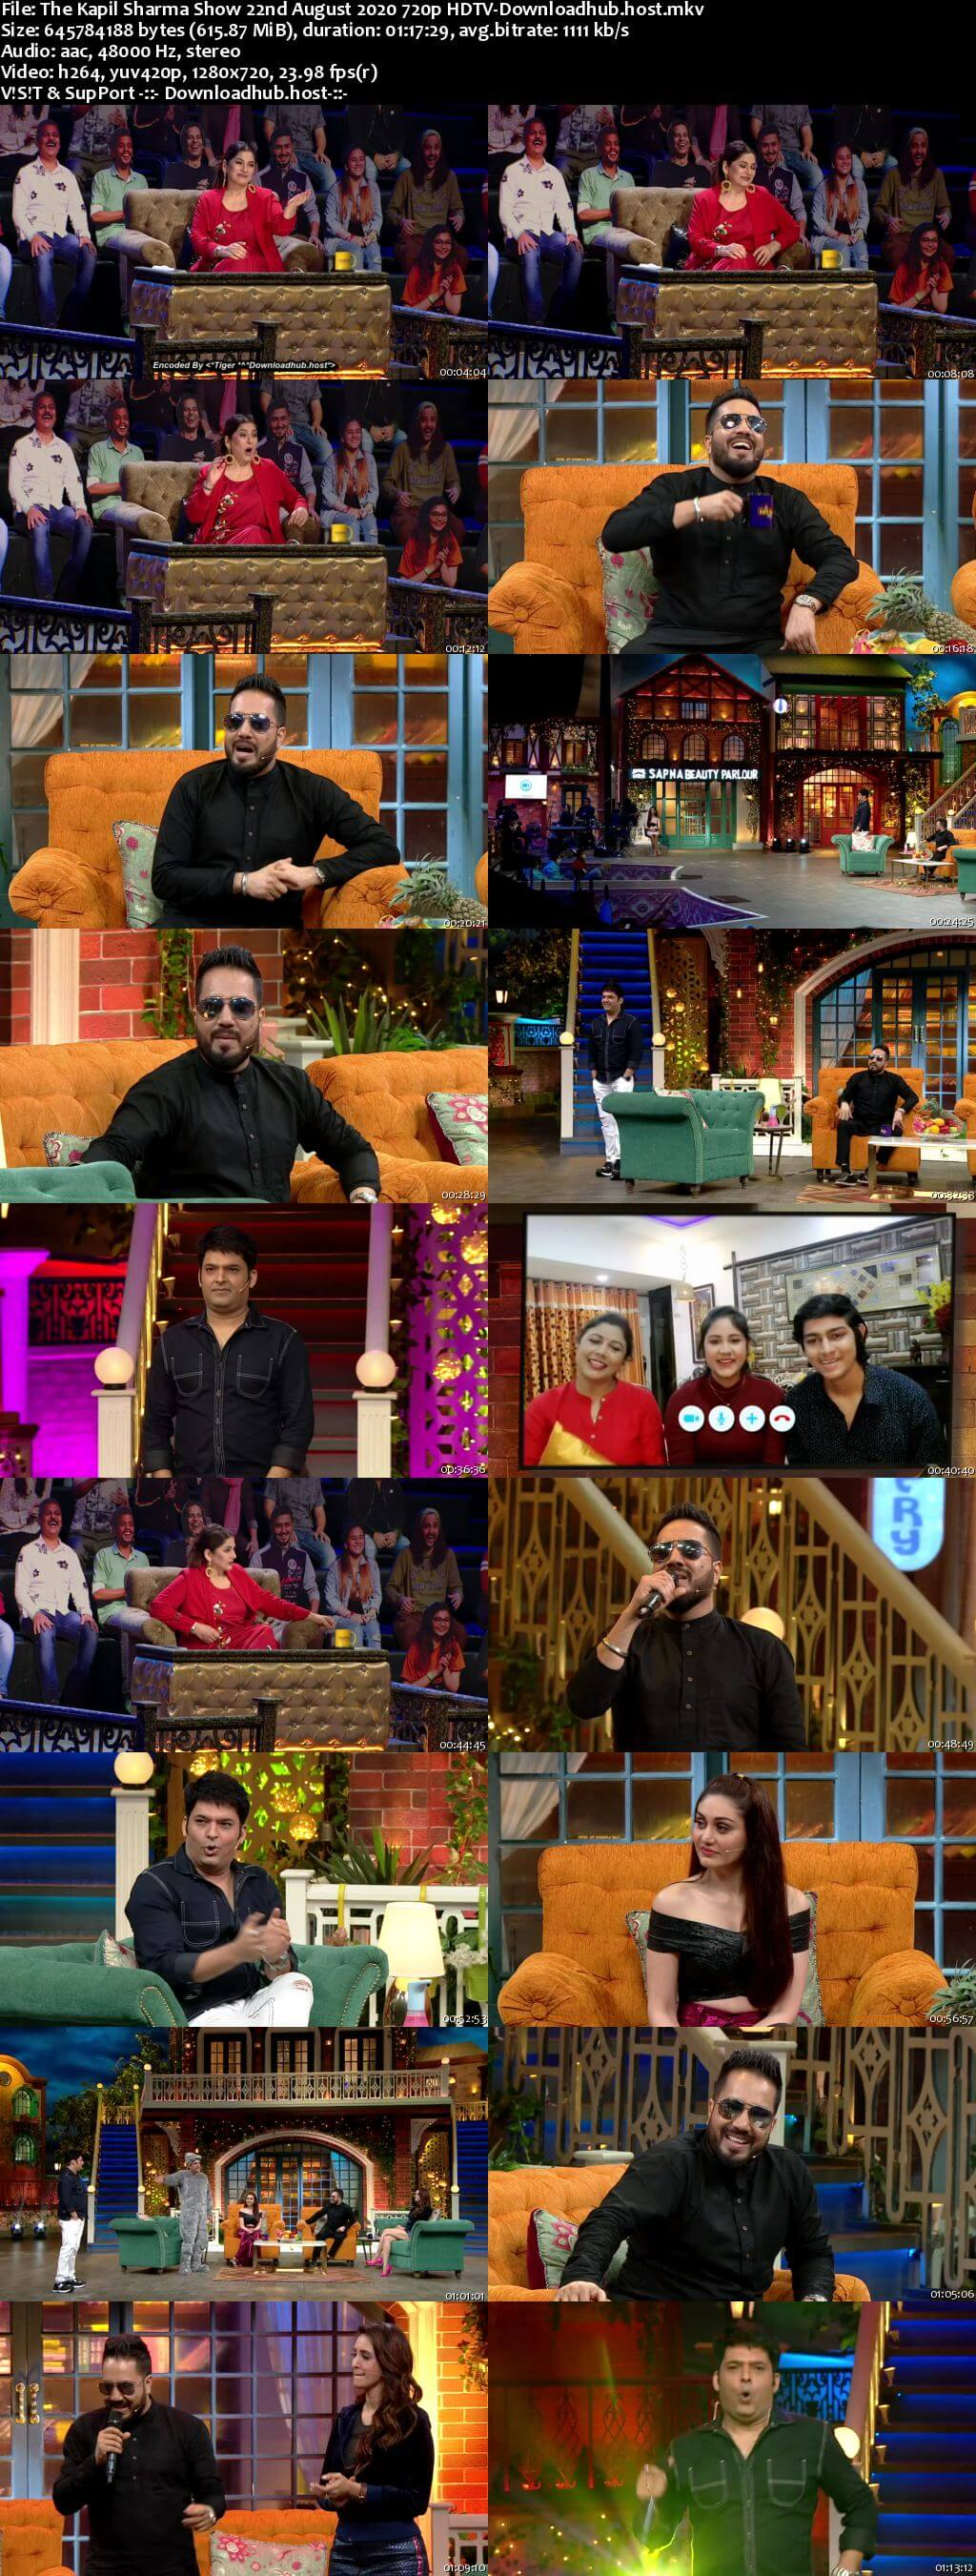 The Kapil Sharma Show 22 August 2020 Episode 134 HDTV 720p 480p